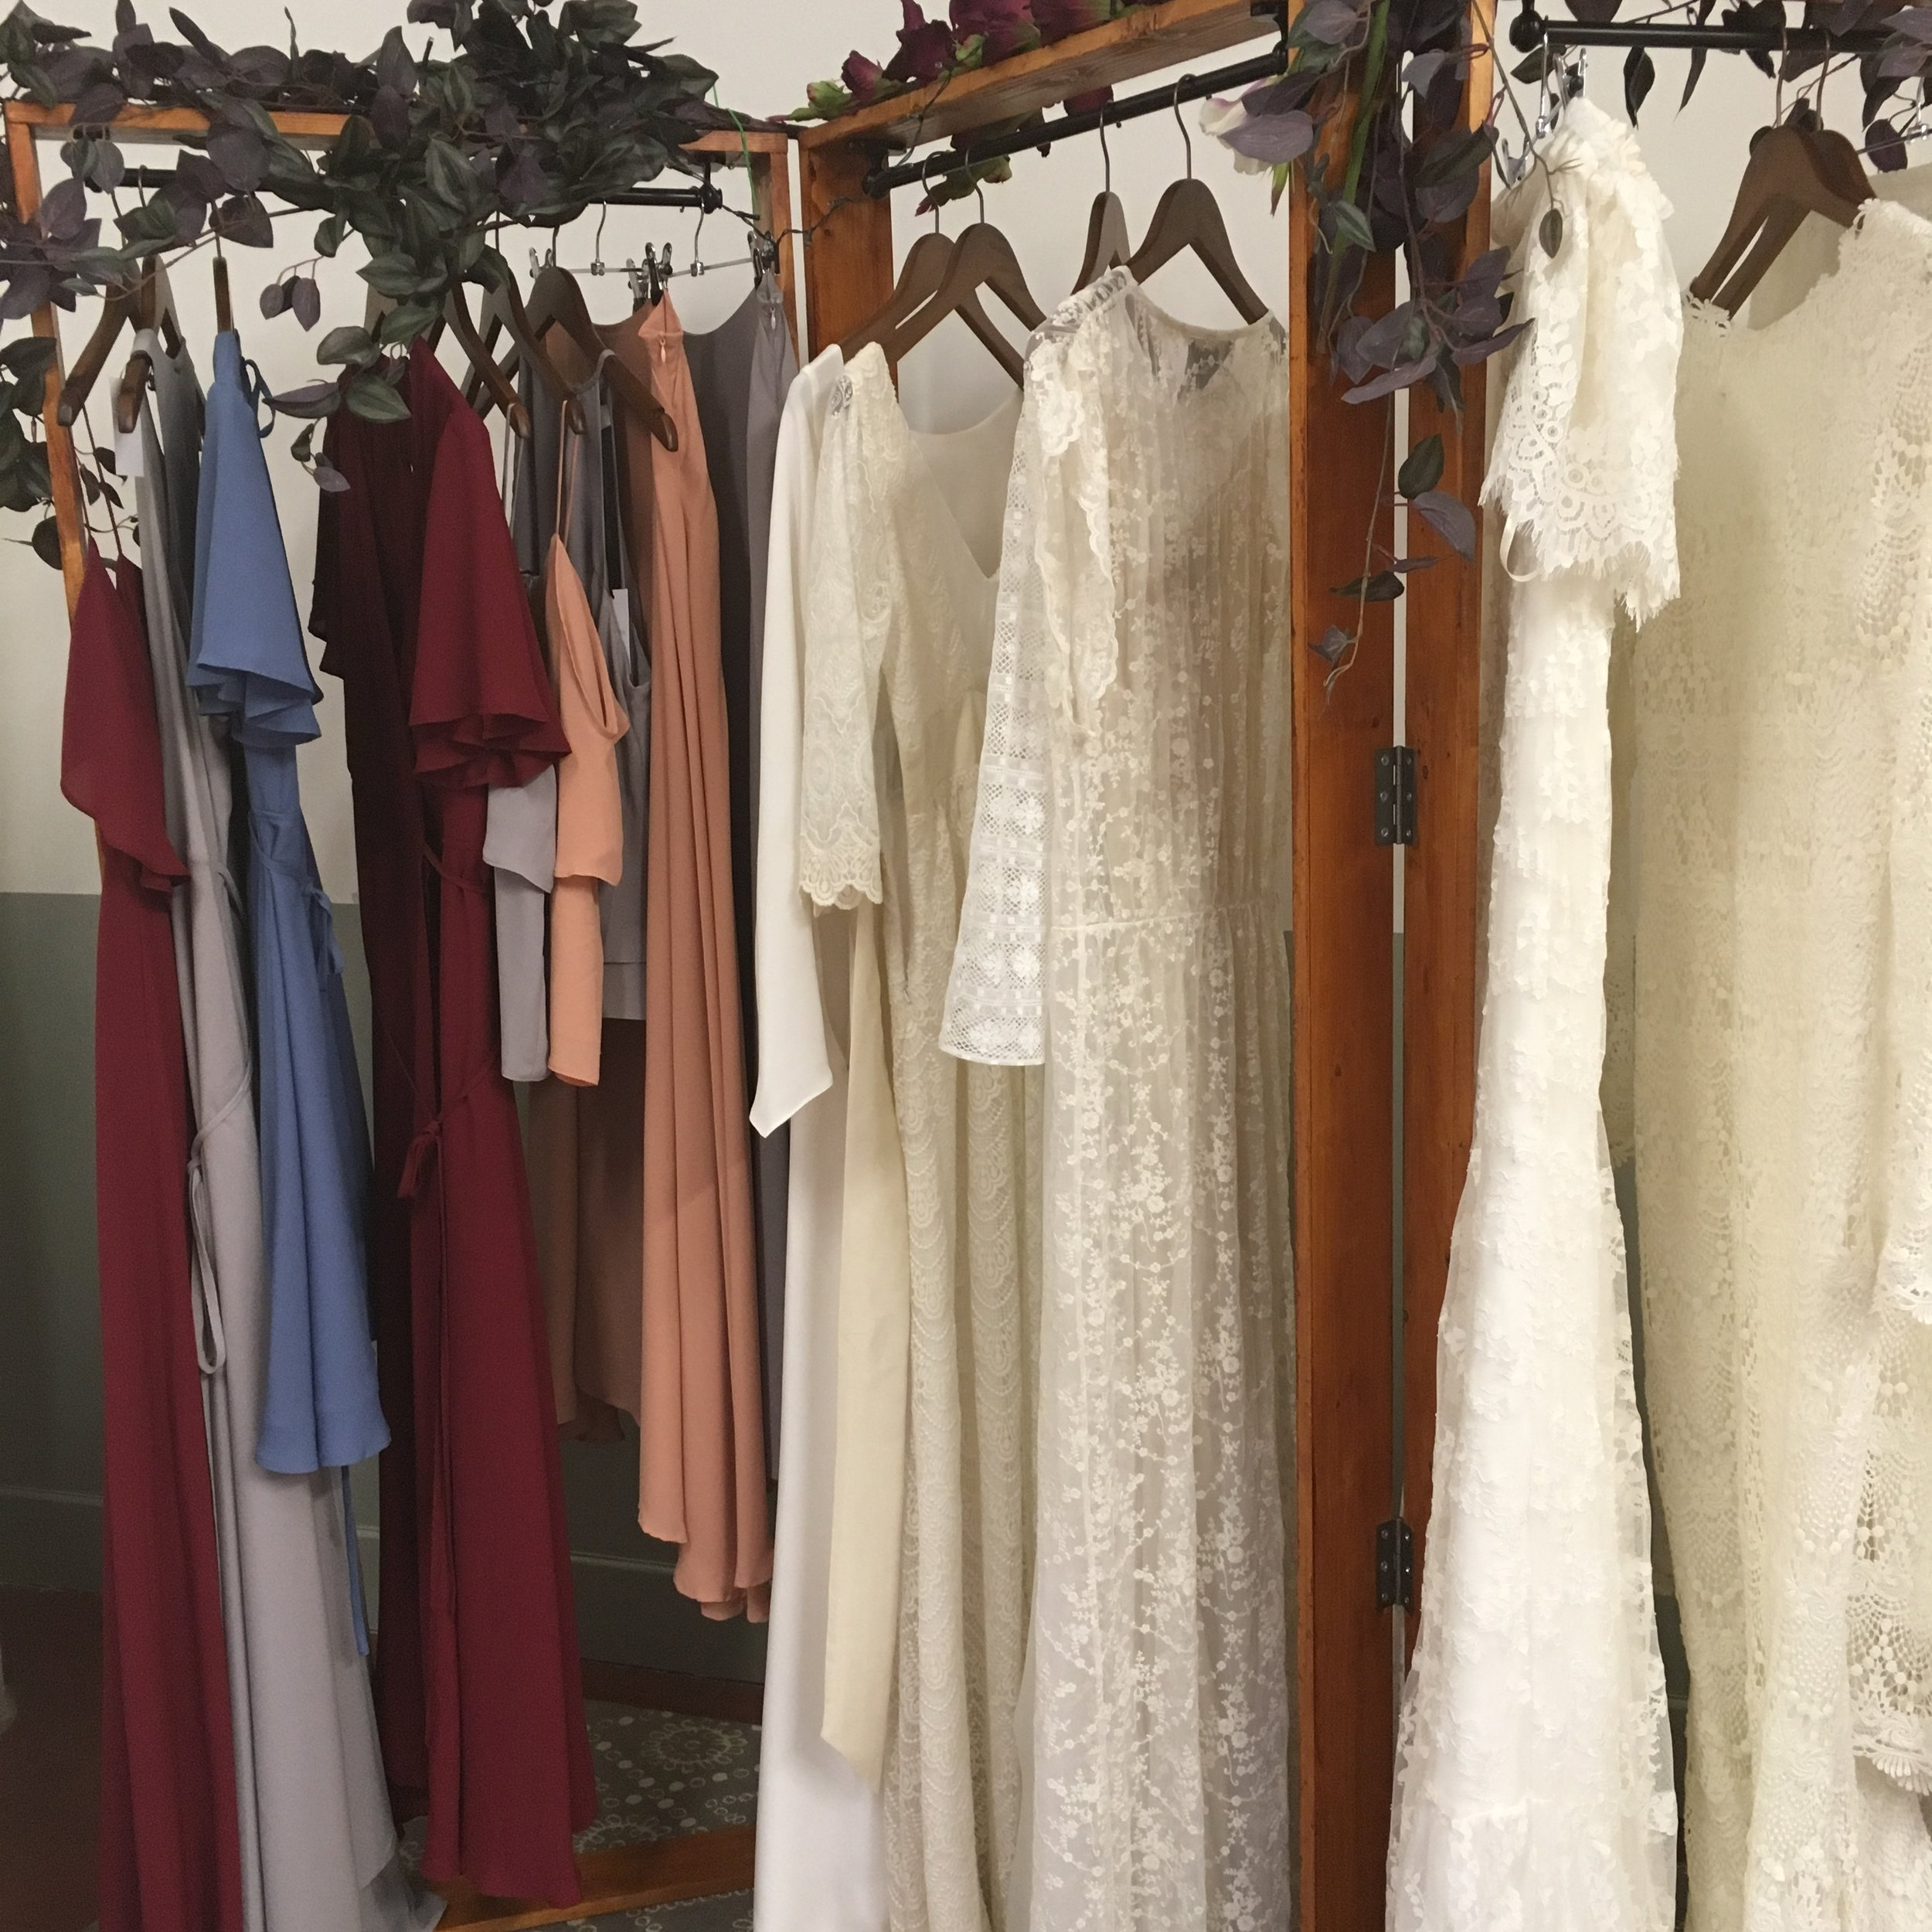 recent additons - Rewritten Bridesmaids and Daughters of Simone.